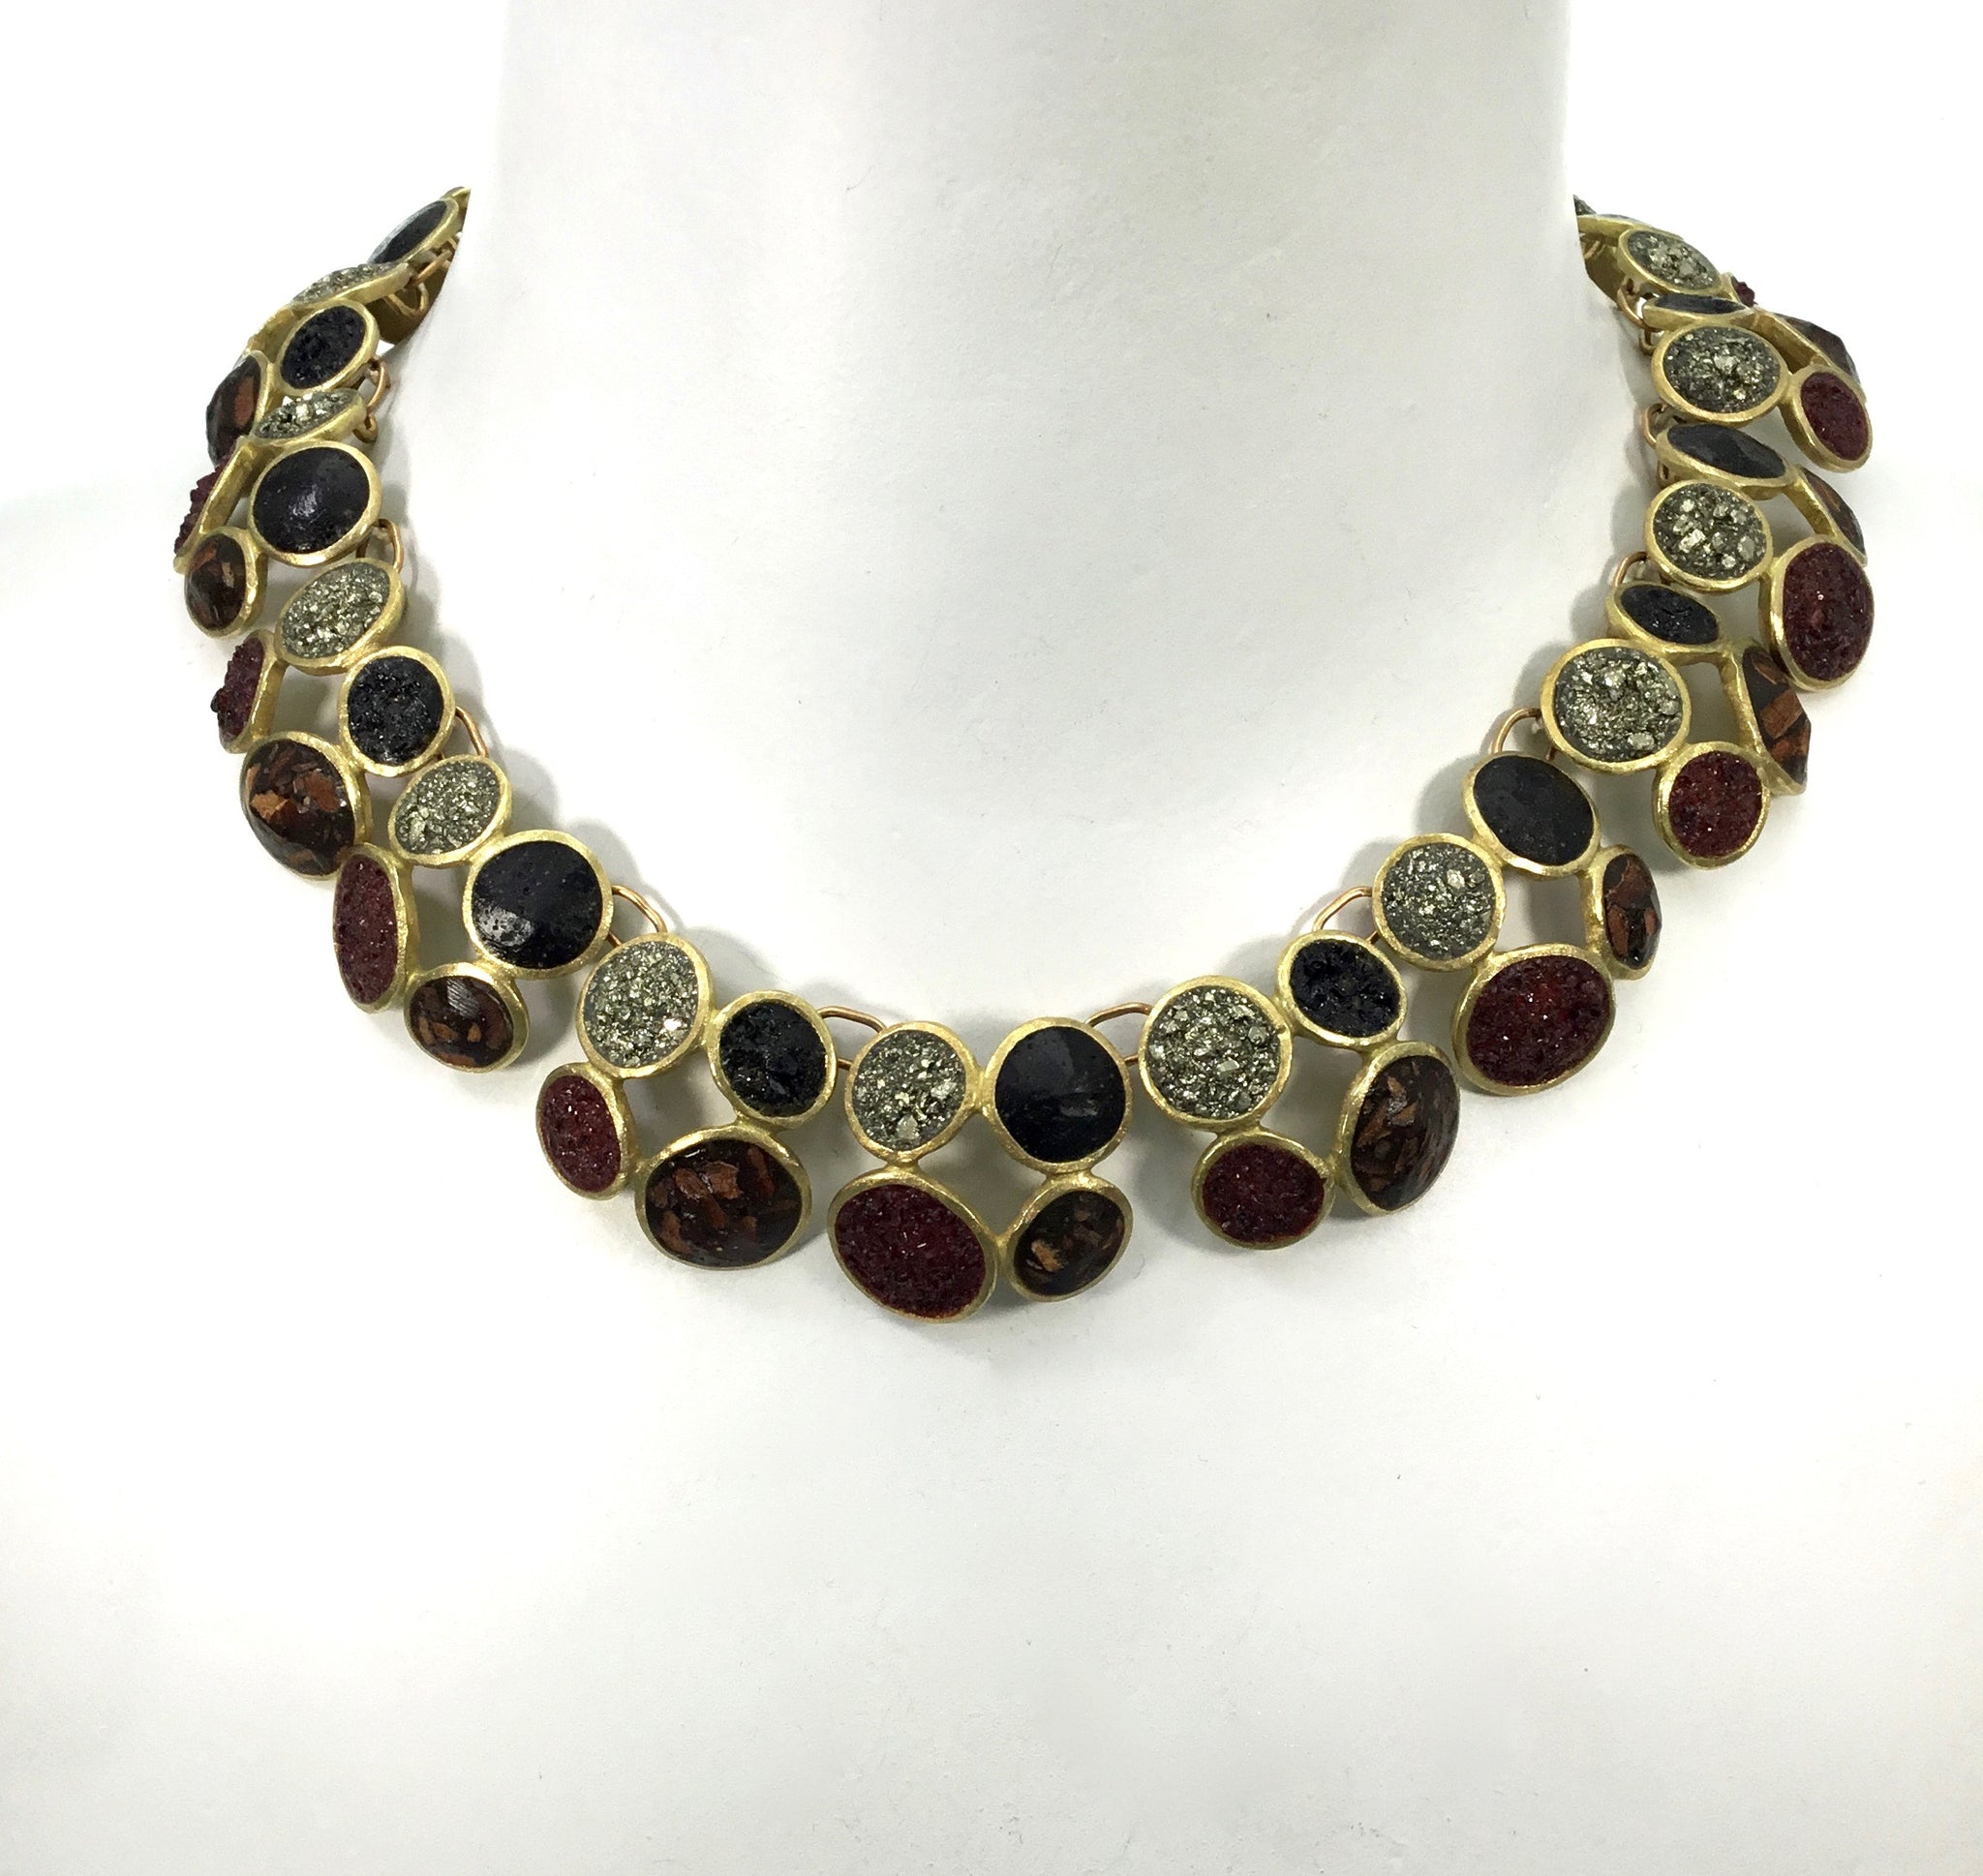 David Urso Bronze Quatro Necklace